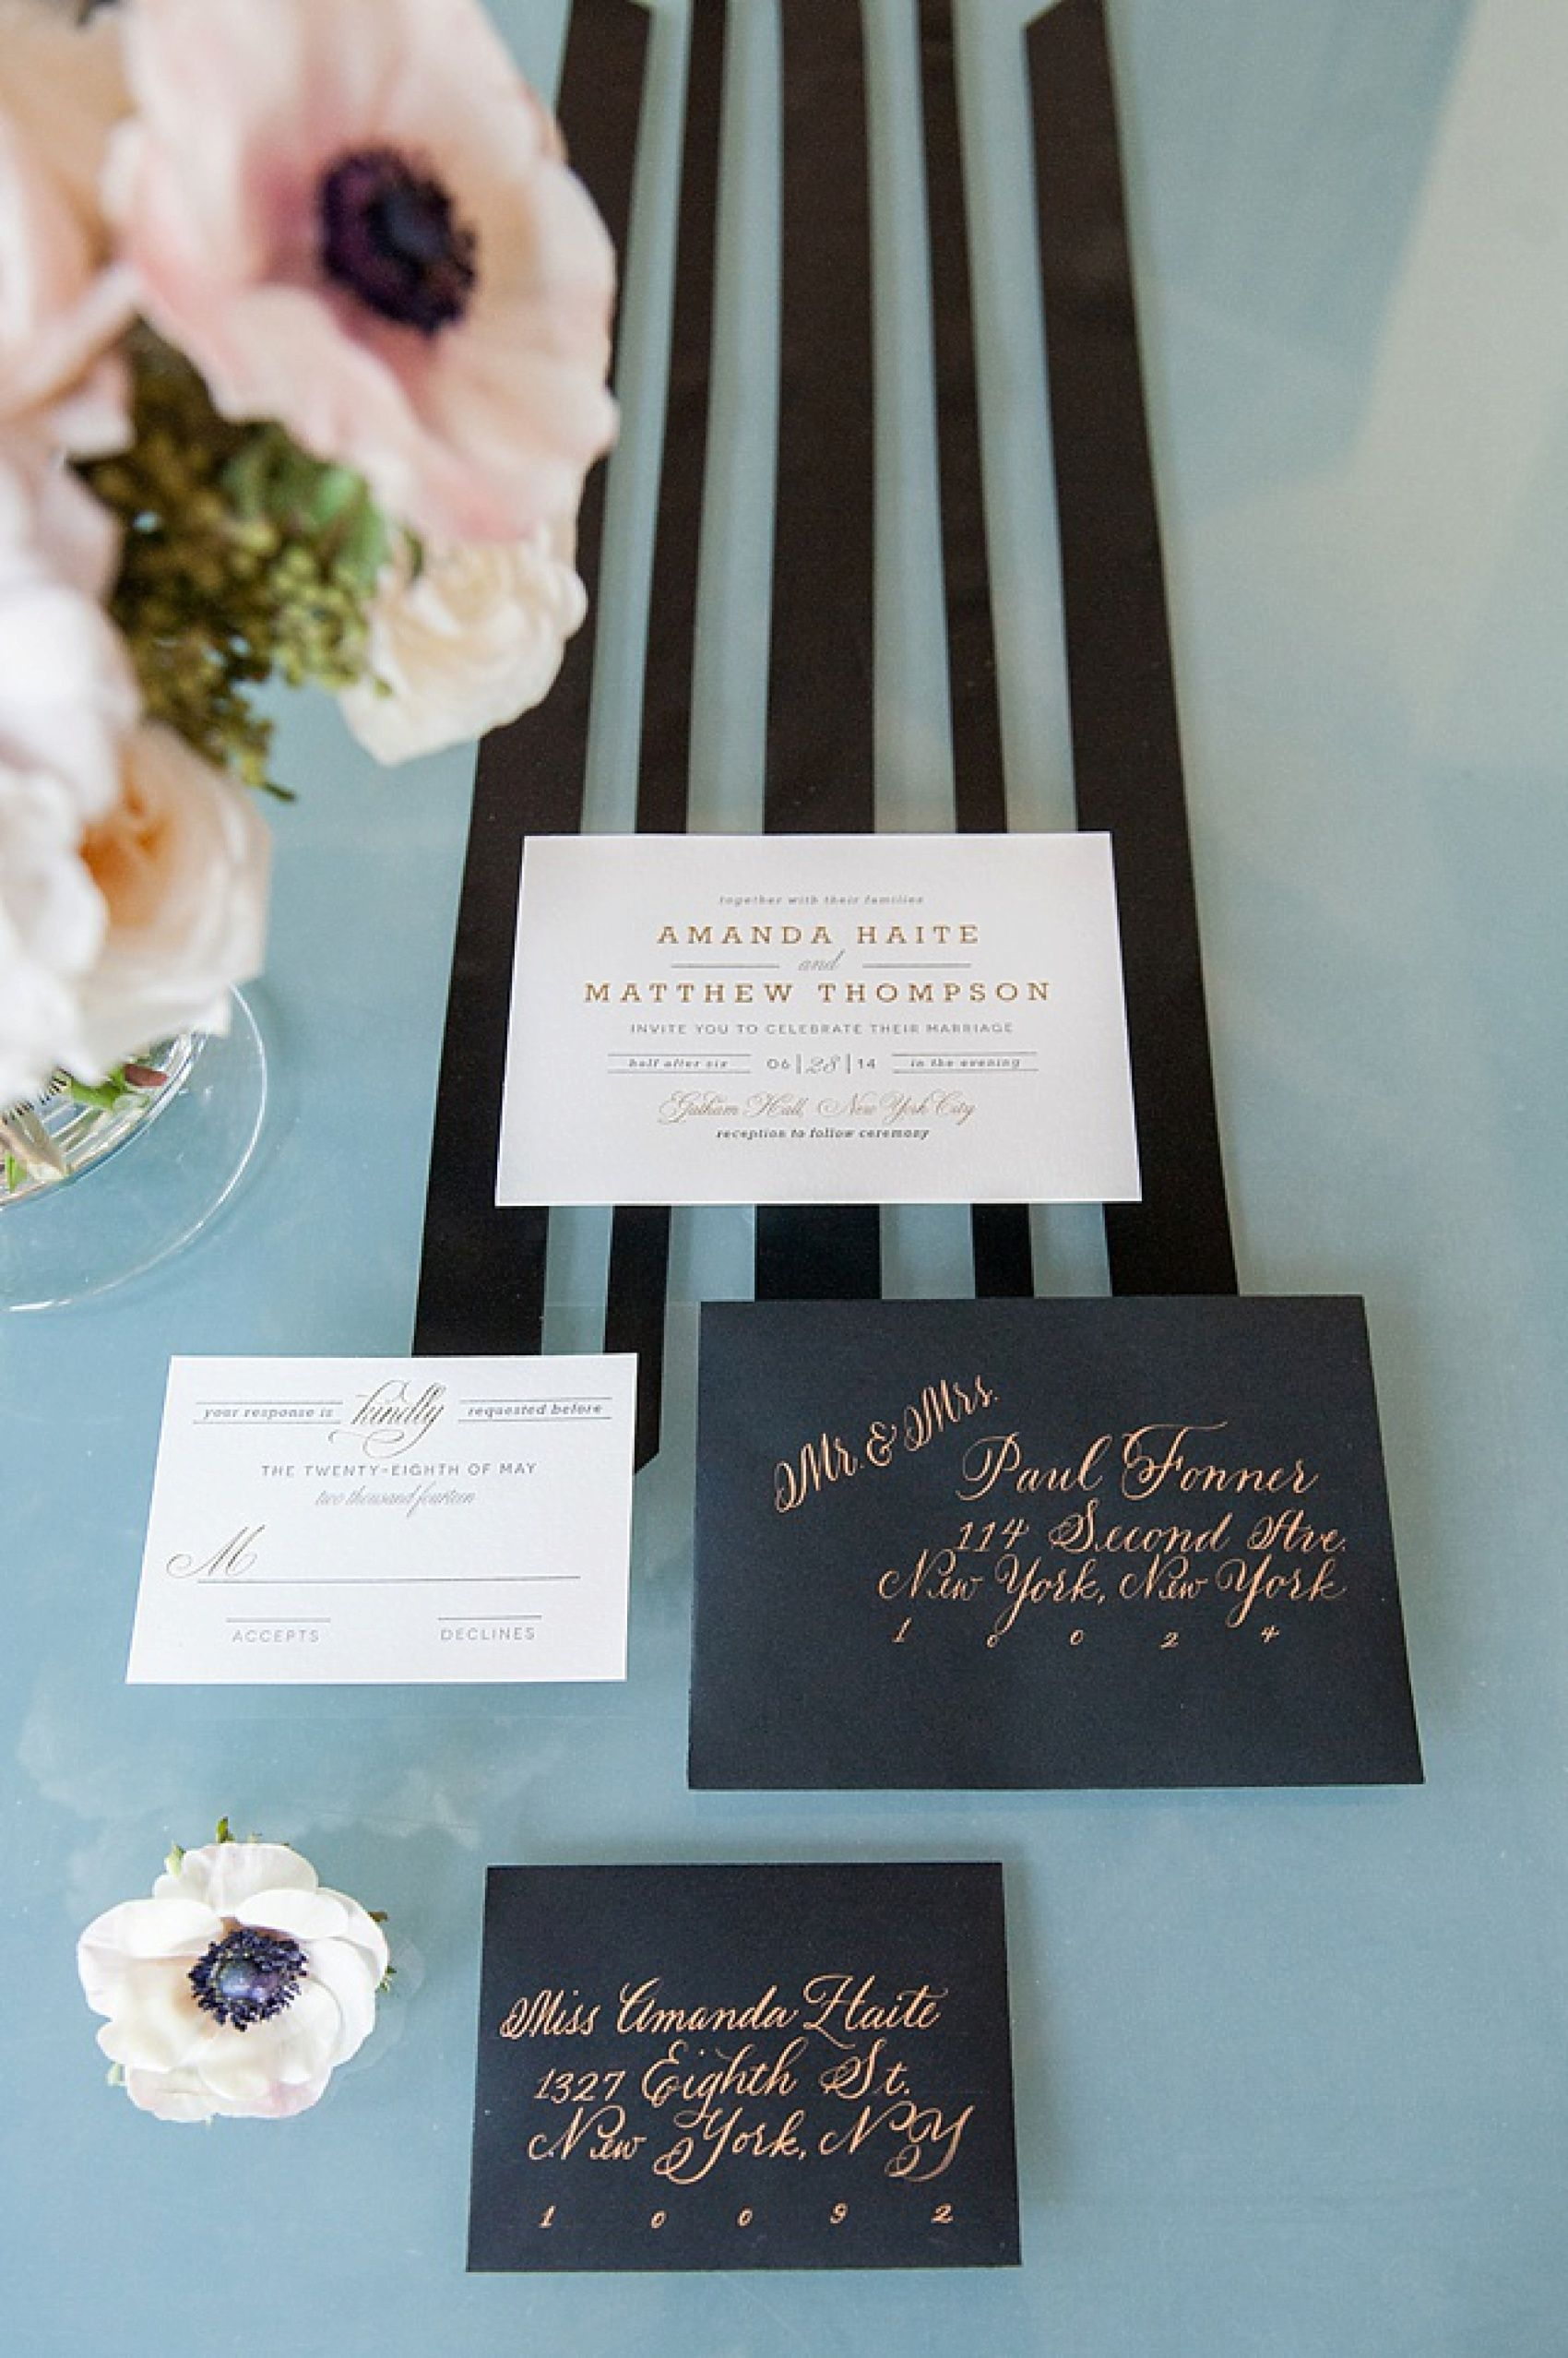 handwrite or print wedding invitation envelopes%0A Black and gold wedding invitation envelope addressing options by Raleigh  wedding photographer  Mikkel Paige  Calligraphy  digital printing and DIY  options